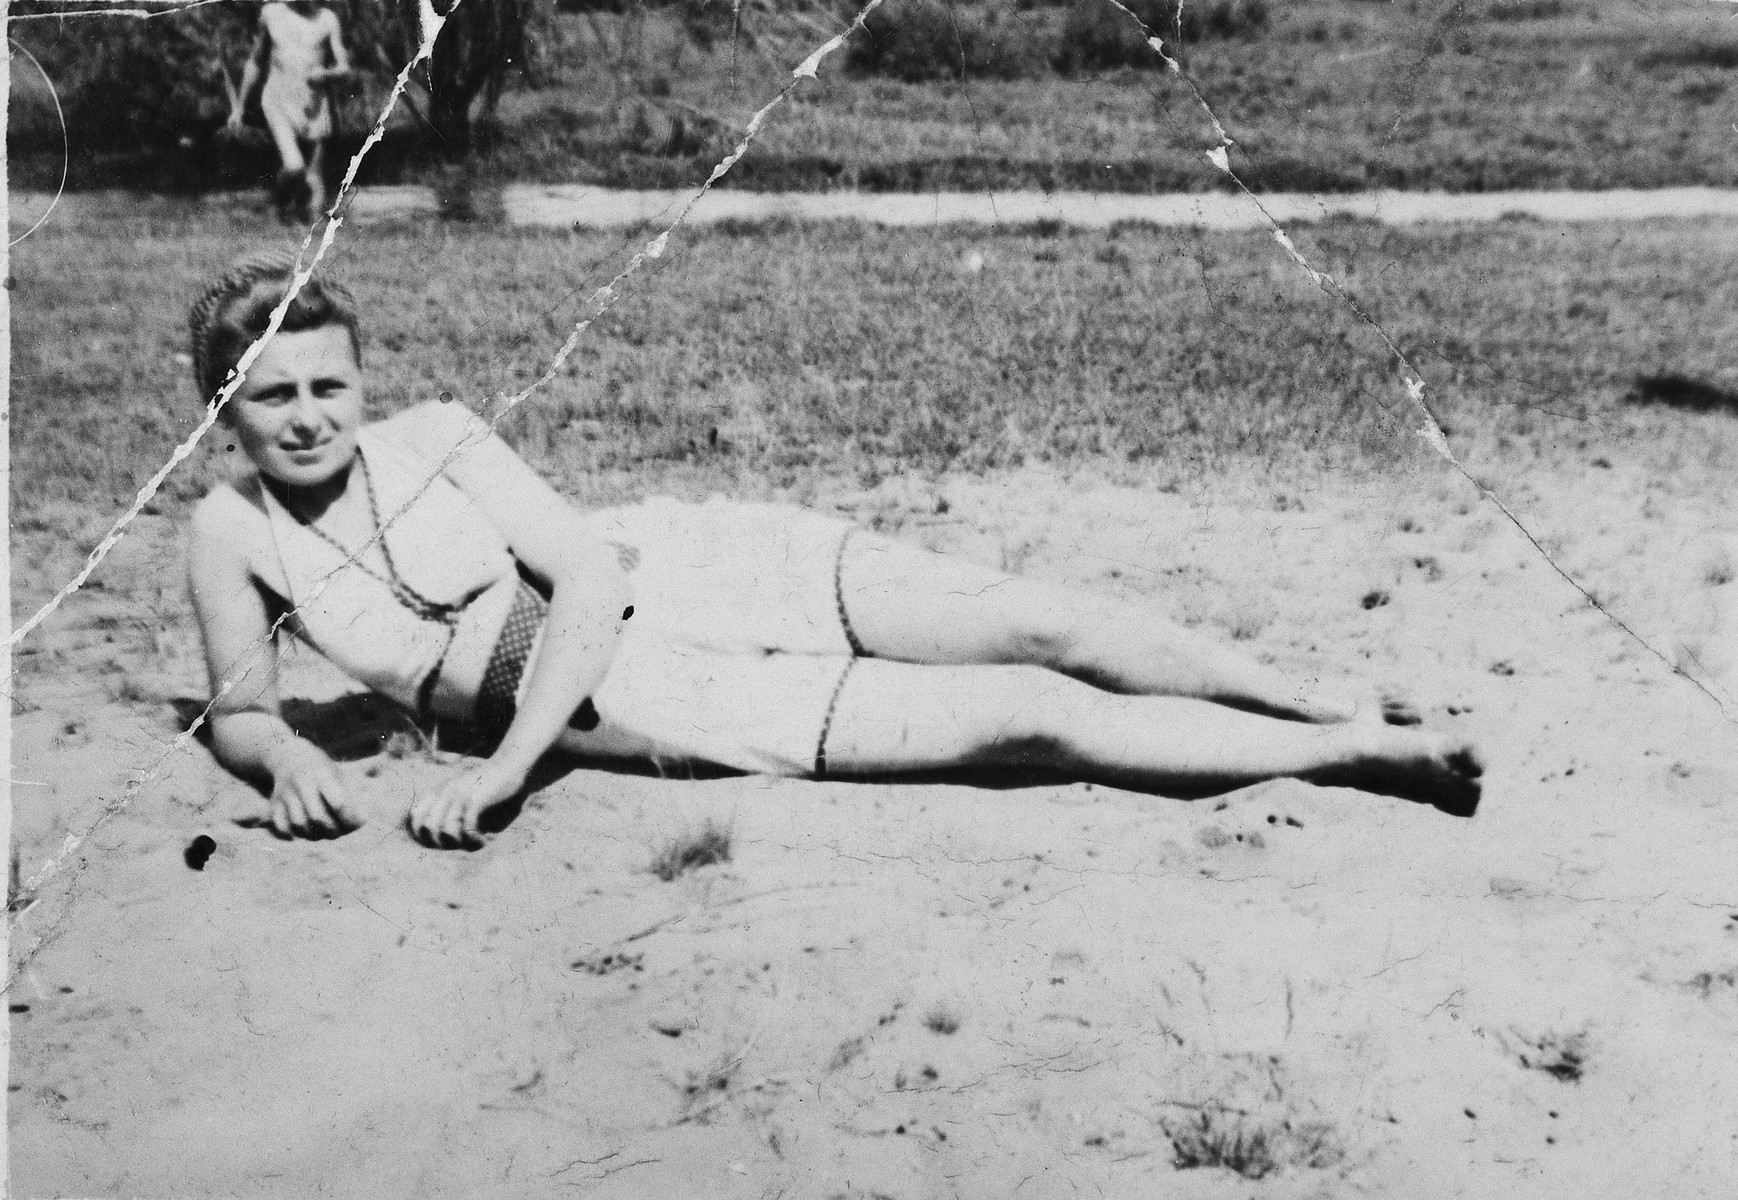 """Rachel Kolin relaxes on a beach in Olkusz.  The donor, Hela, had this photo with her in the Markstadt labor camp and gave it to her future husband, Szulim, before the two became separated.  Hela inscribed the photo with the message, """"I don't have a picture of me, so I give you a picture of my sister, one that I will never forget."""""""